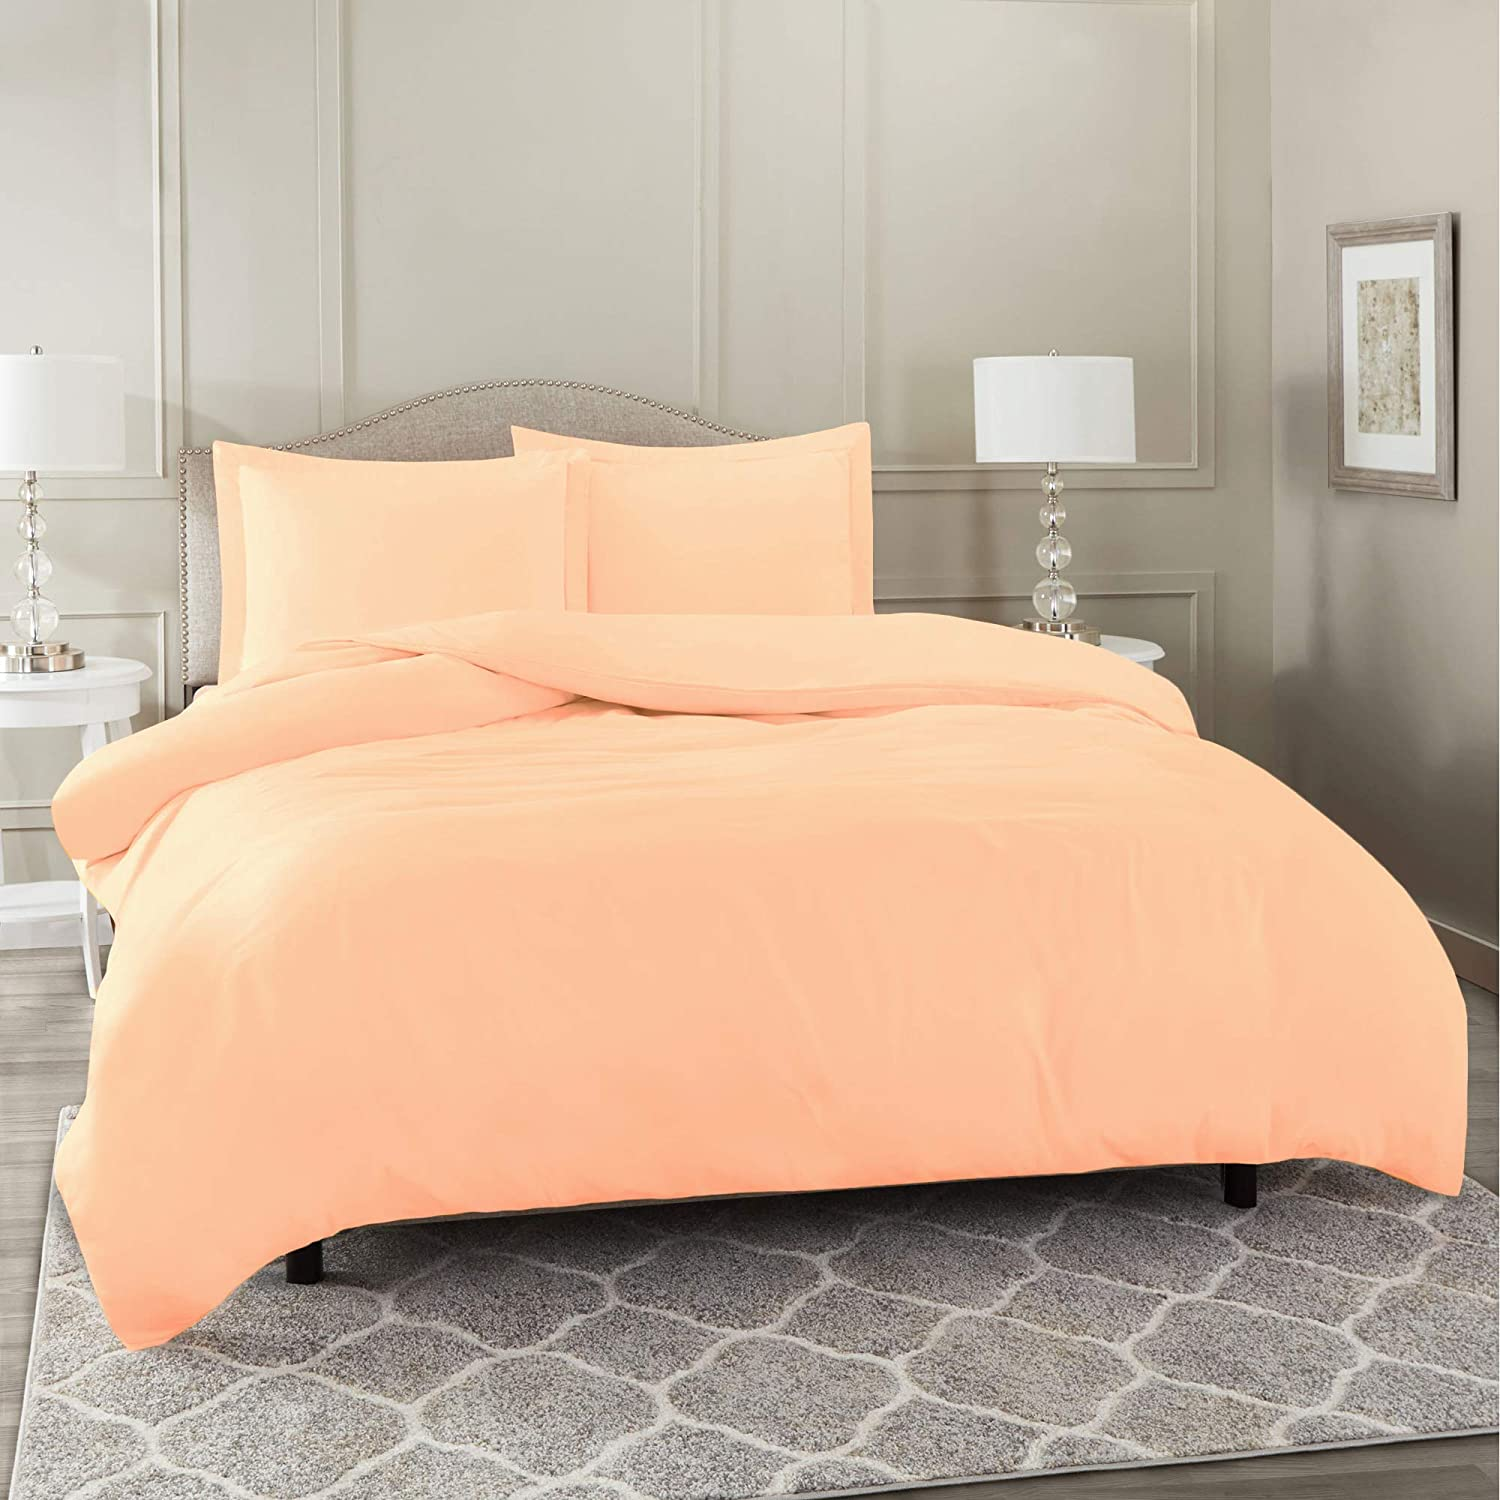 "Nestl Bedding Duvet Cover 3 Piece Set – Ultra Soft Double Brushed Microfiber Hotel Collection – Comforter Cover with Button Closure and 2 Pillow Shams, Peach - Full (Double) 80""x90"""